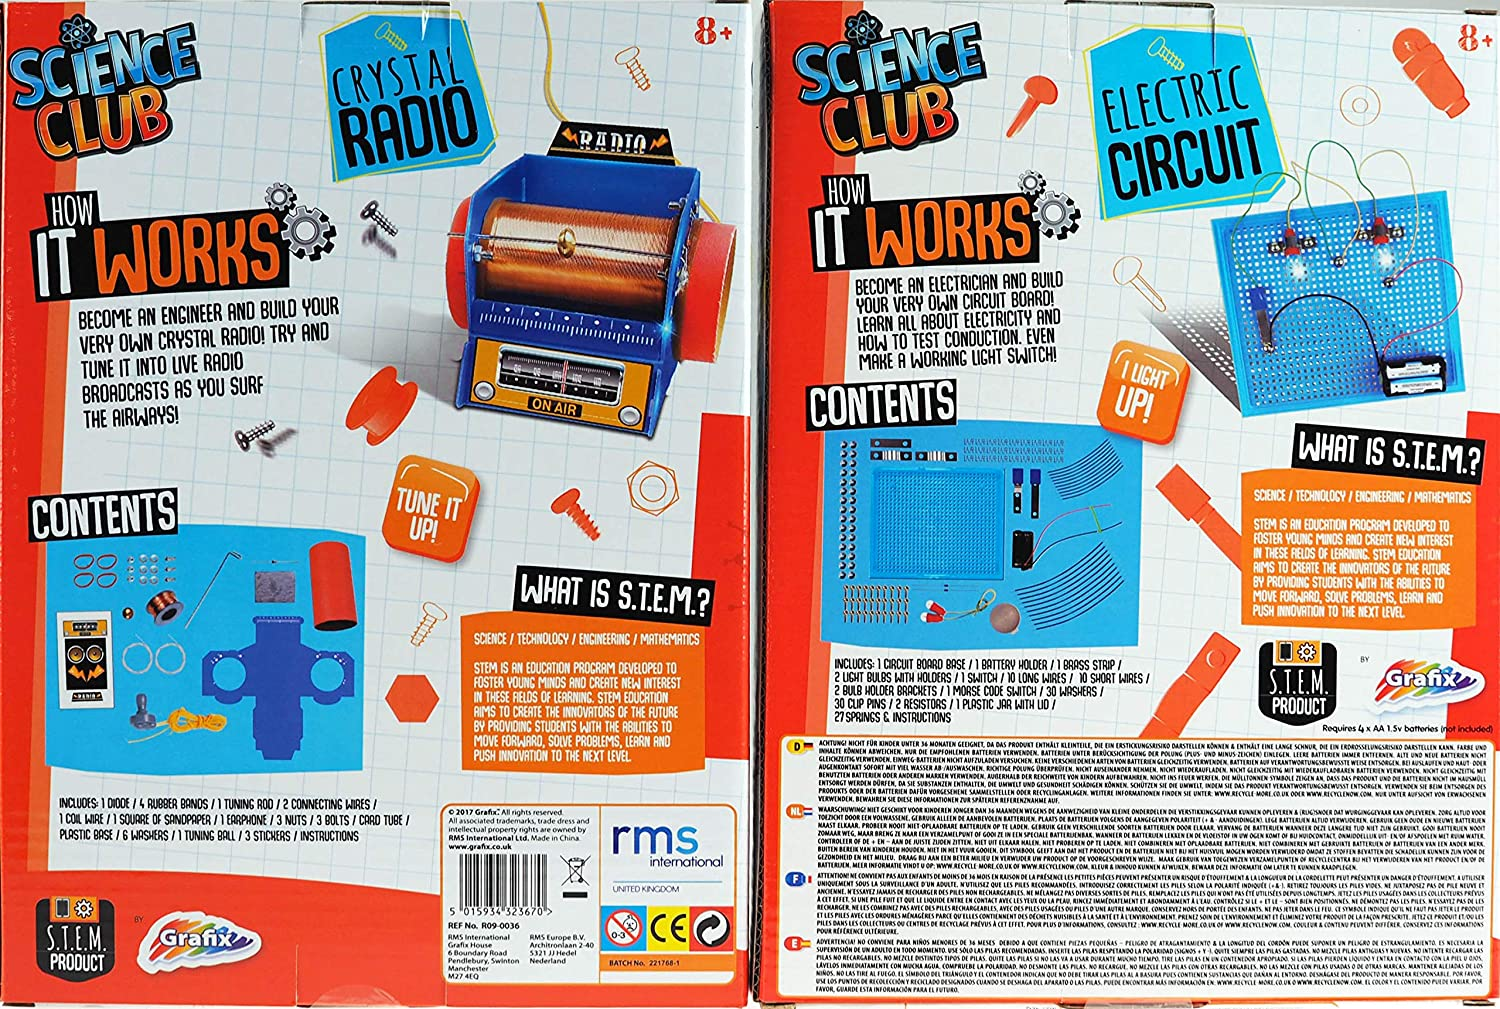 Set Of 2 Science Kits Build Your Own Crystal Radio Electric Circuit Older Boys Girls